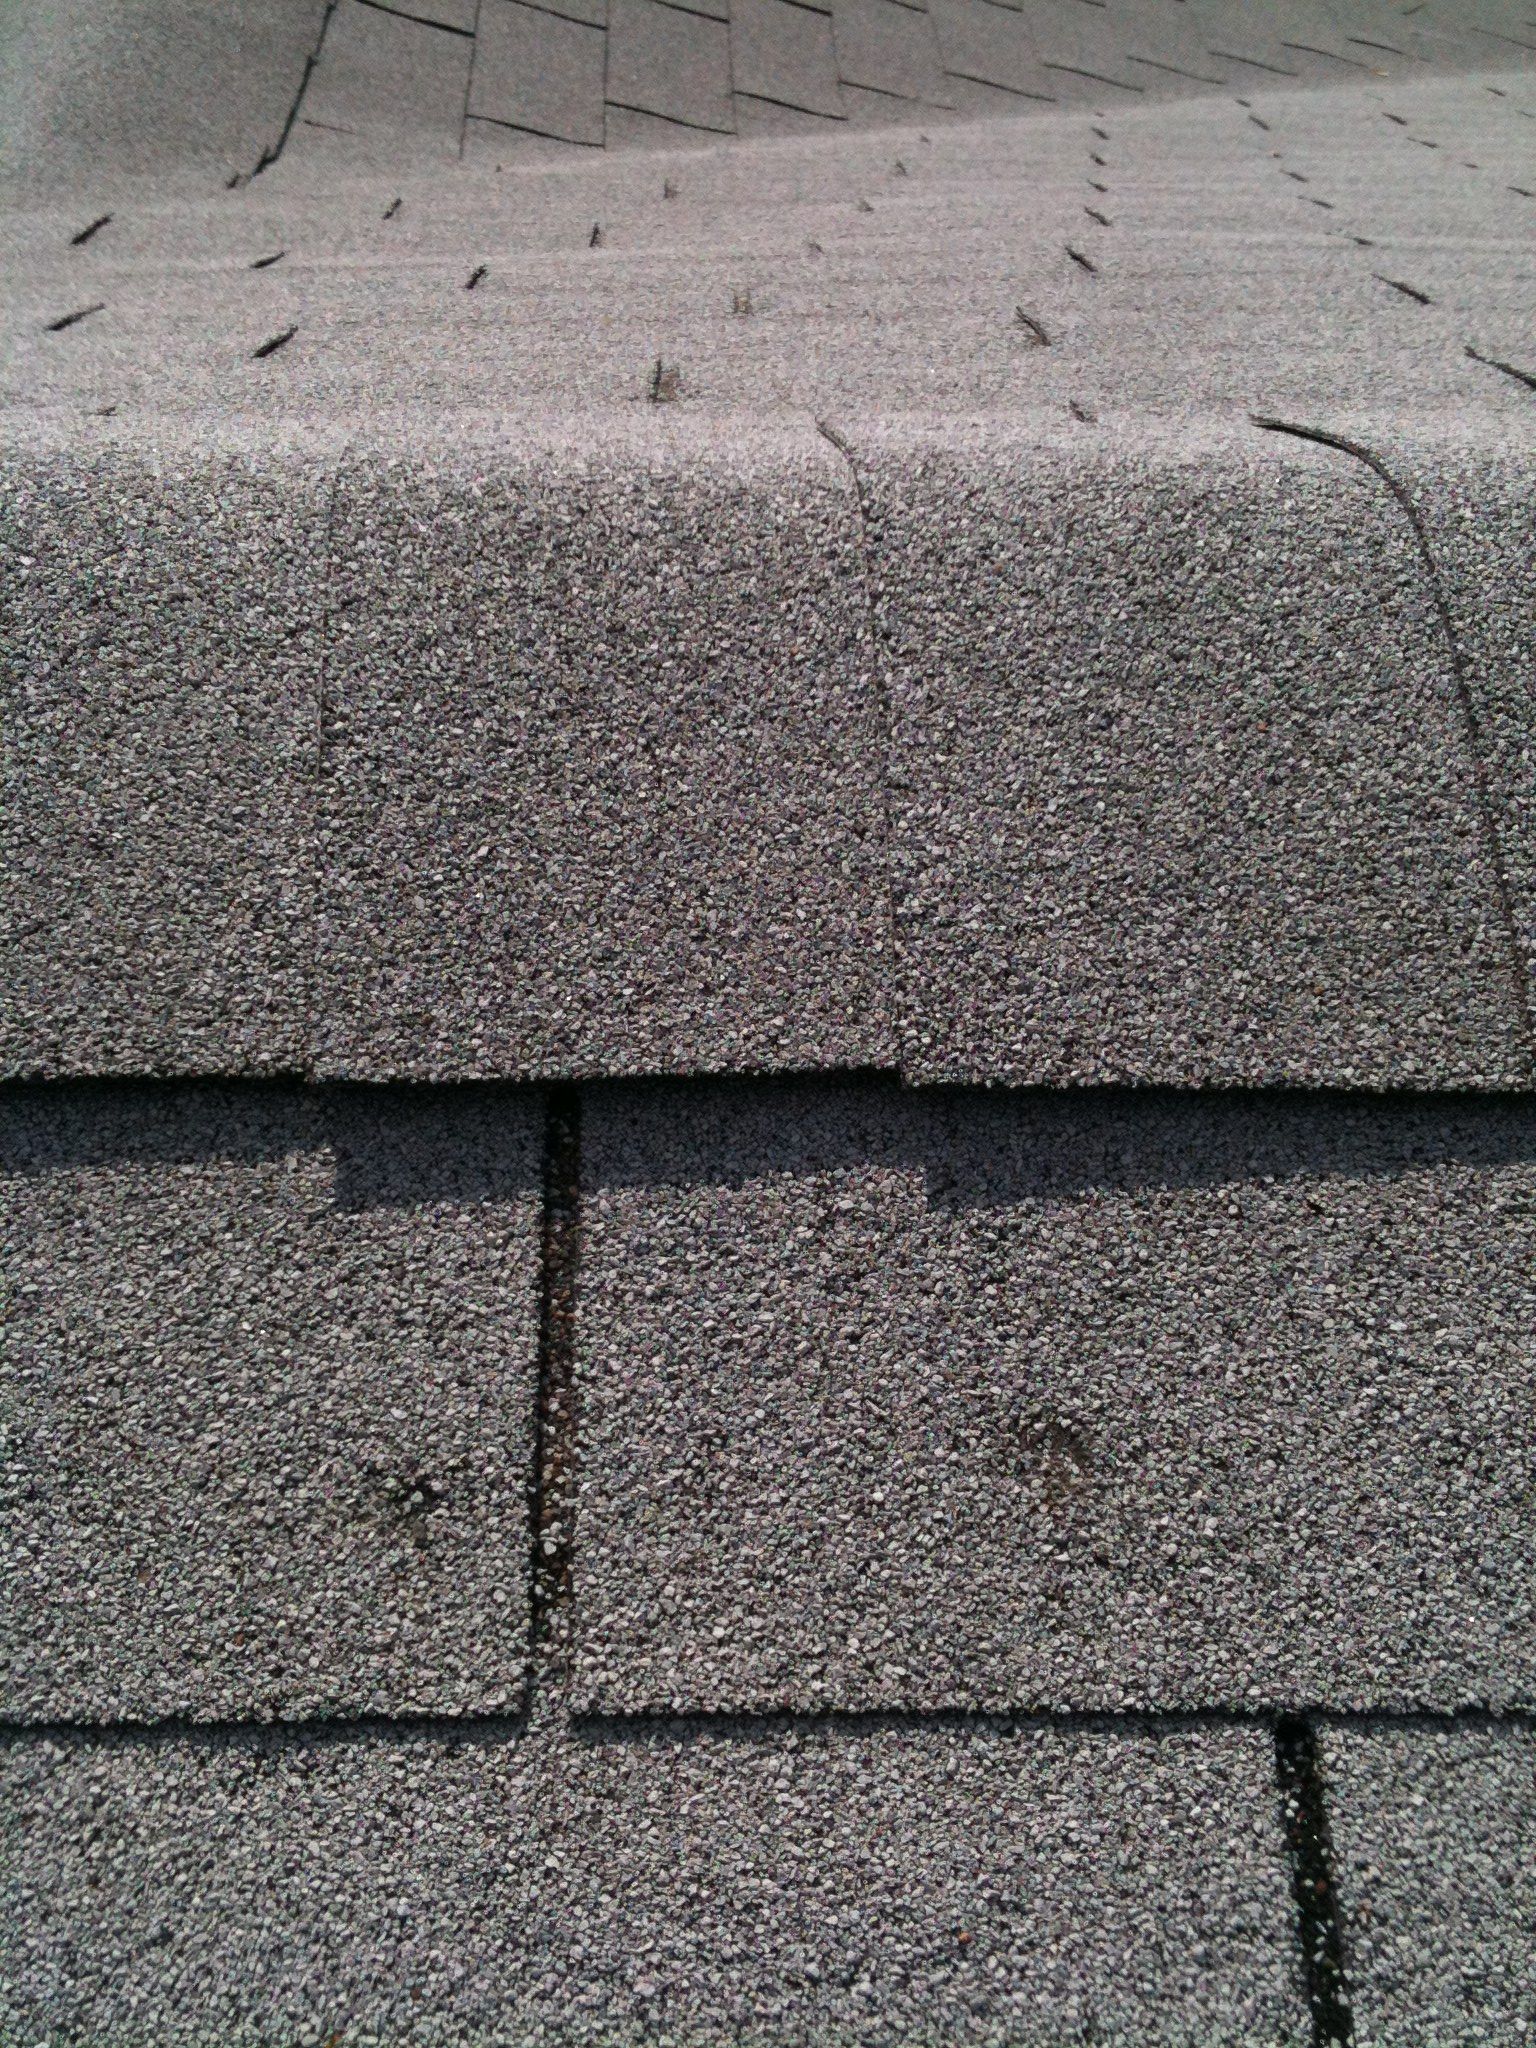 Roof Shingle Hail Damage Waco Roofer